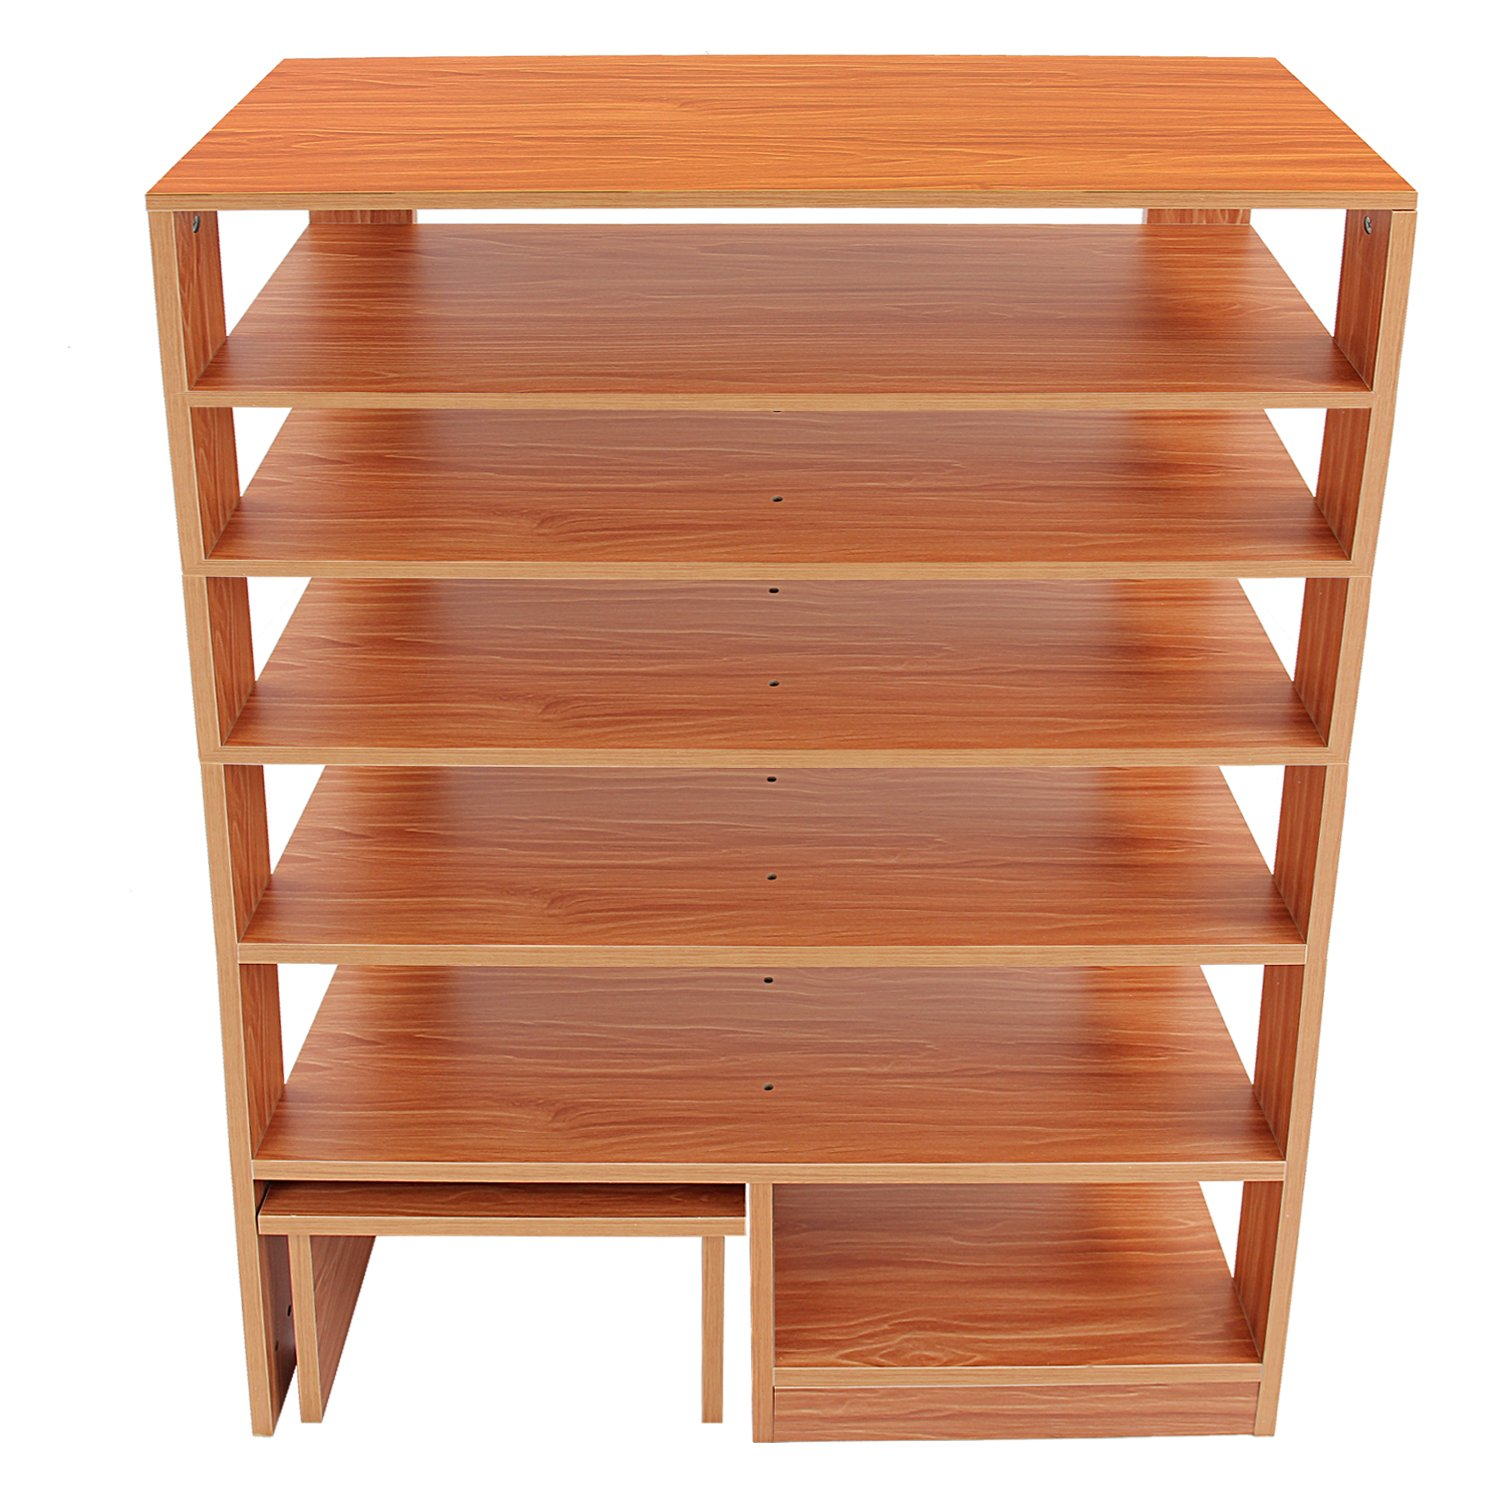 Jerry & Maggie - 6 Tier Wood MDF Solid Shelf Shoe Rack with One Footstool/Shoe Storage Shelves Free Standing Flat Shoe Racks Classic Style -100% Multi Function Shelf Organizer - Natural Wood Tone by Jerry & Maggie (Image #6)